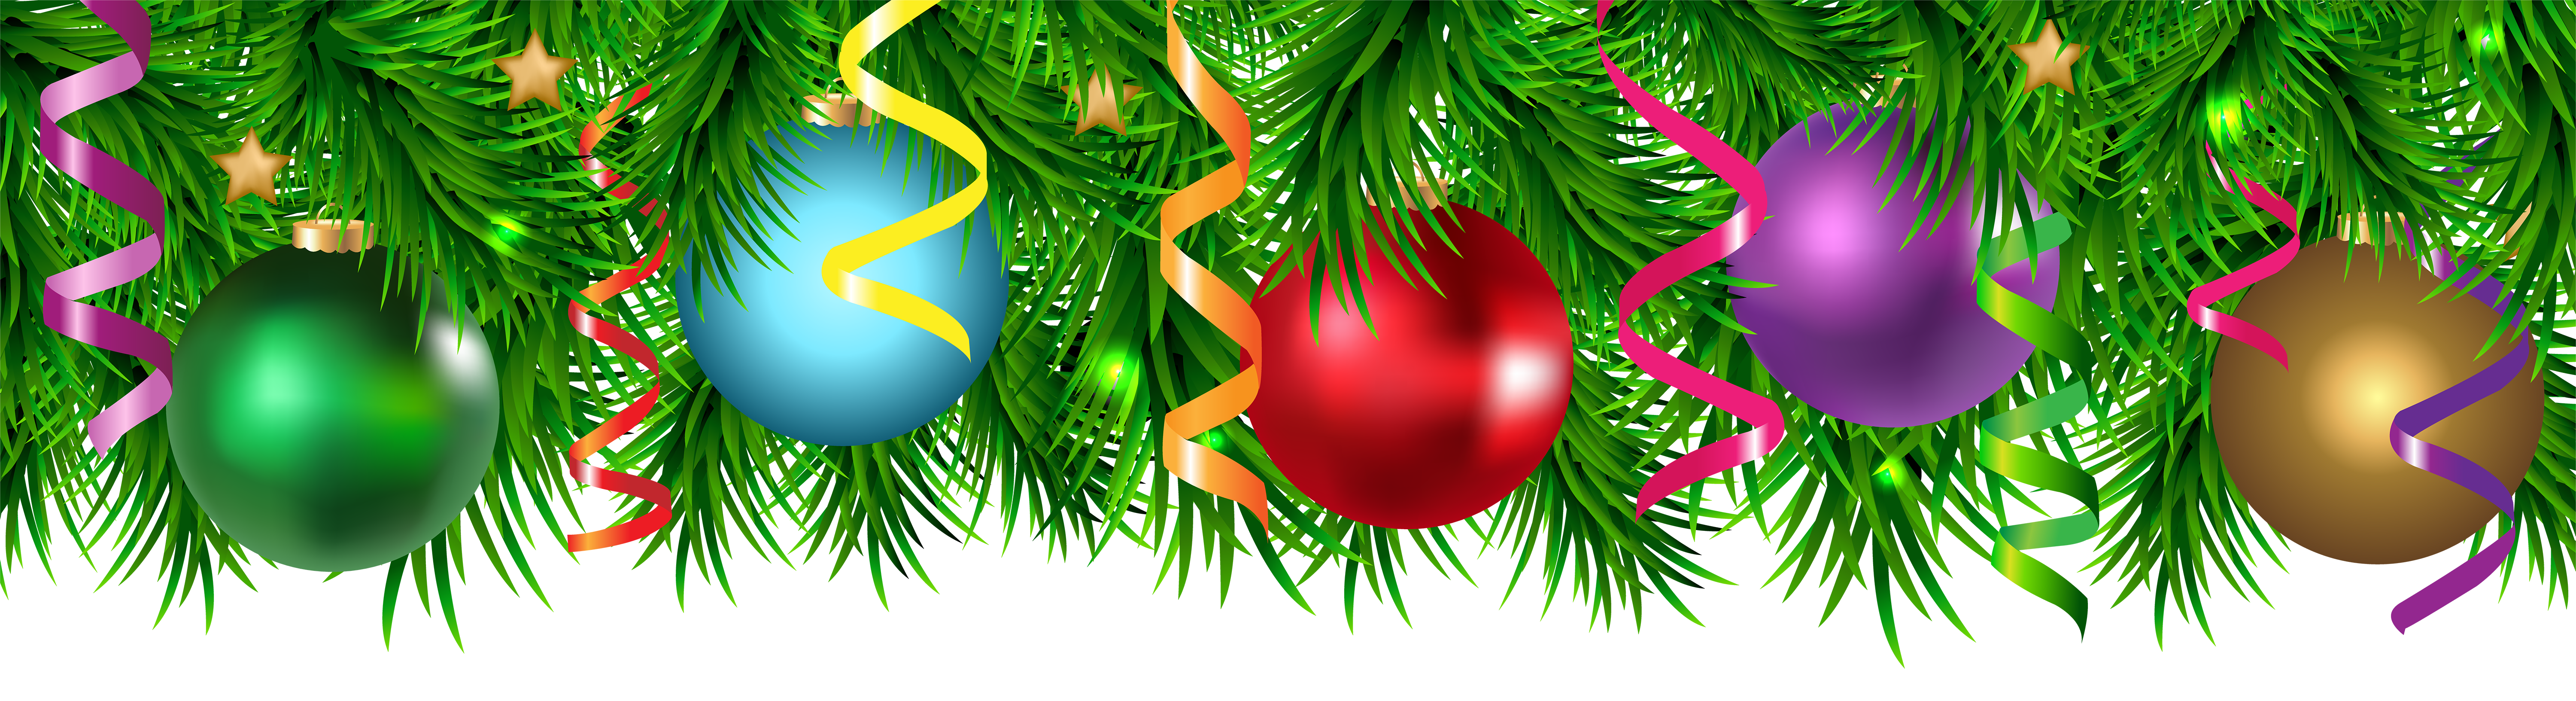 Christmas Pine Decorating Border PNG Clip Art Image.